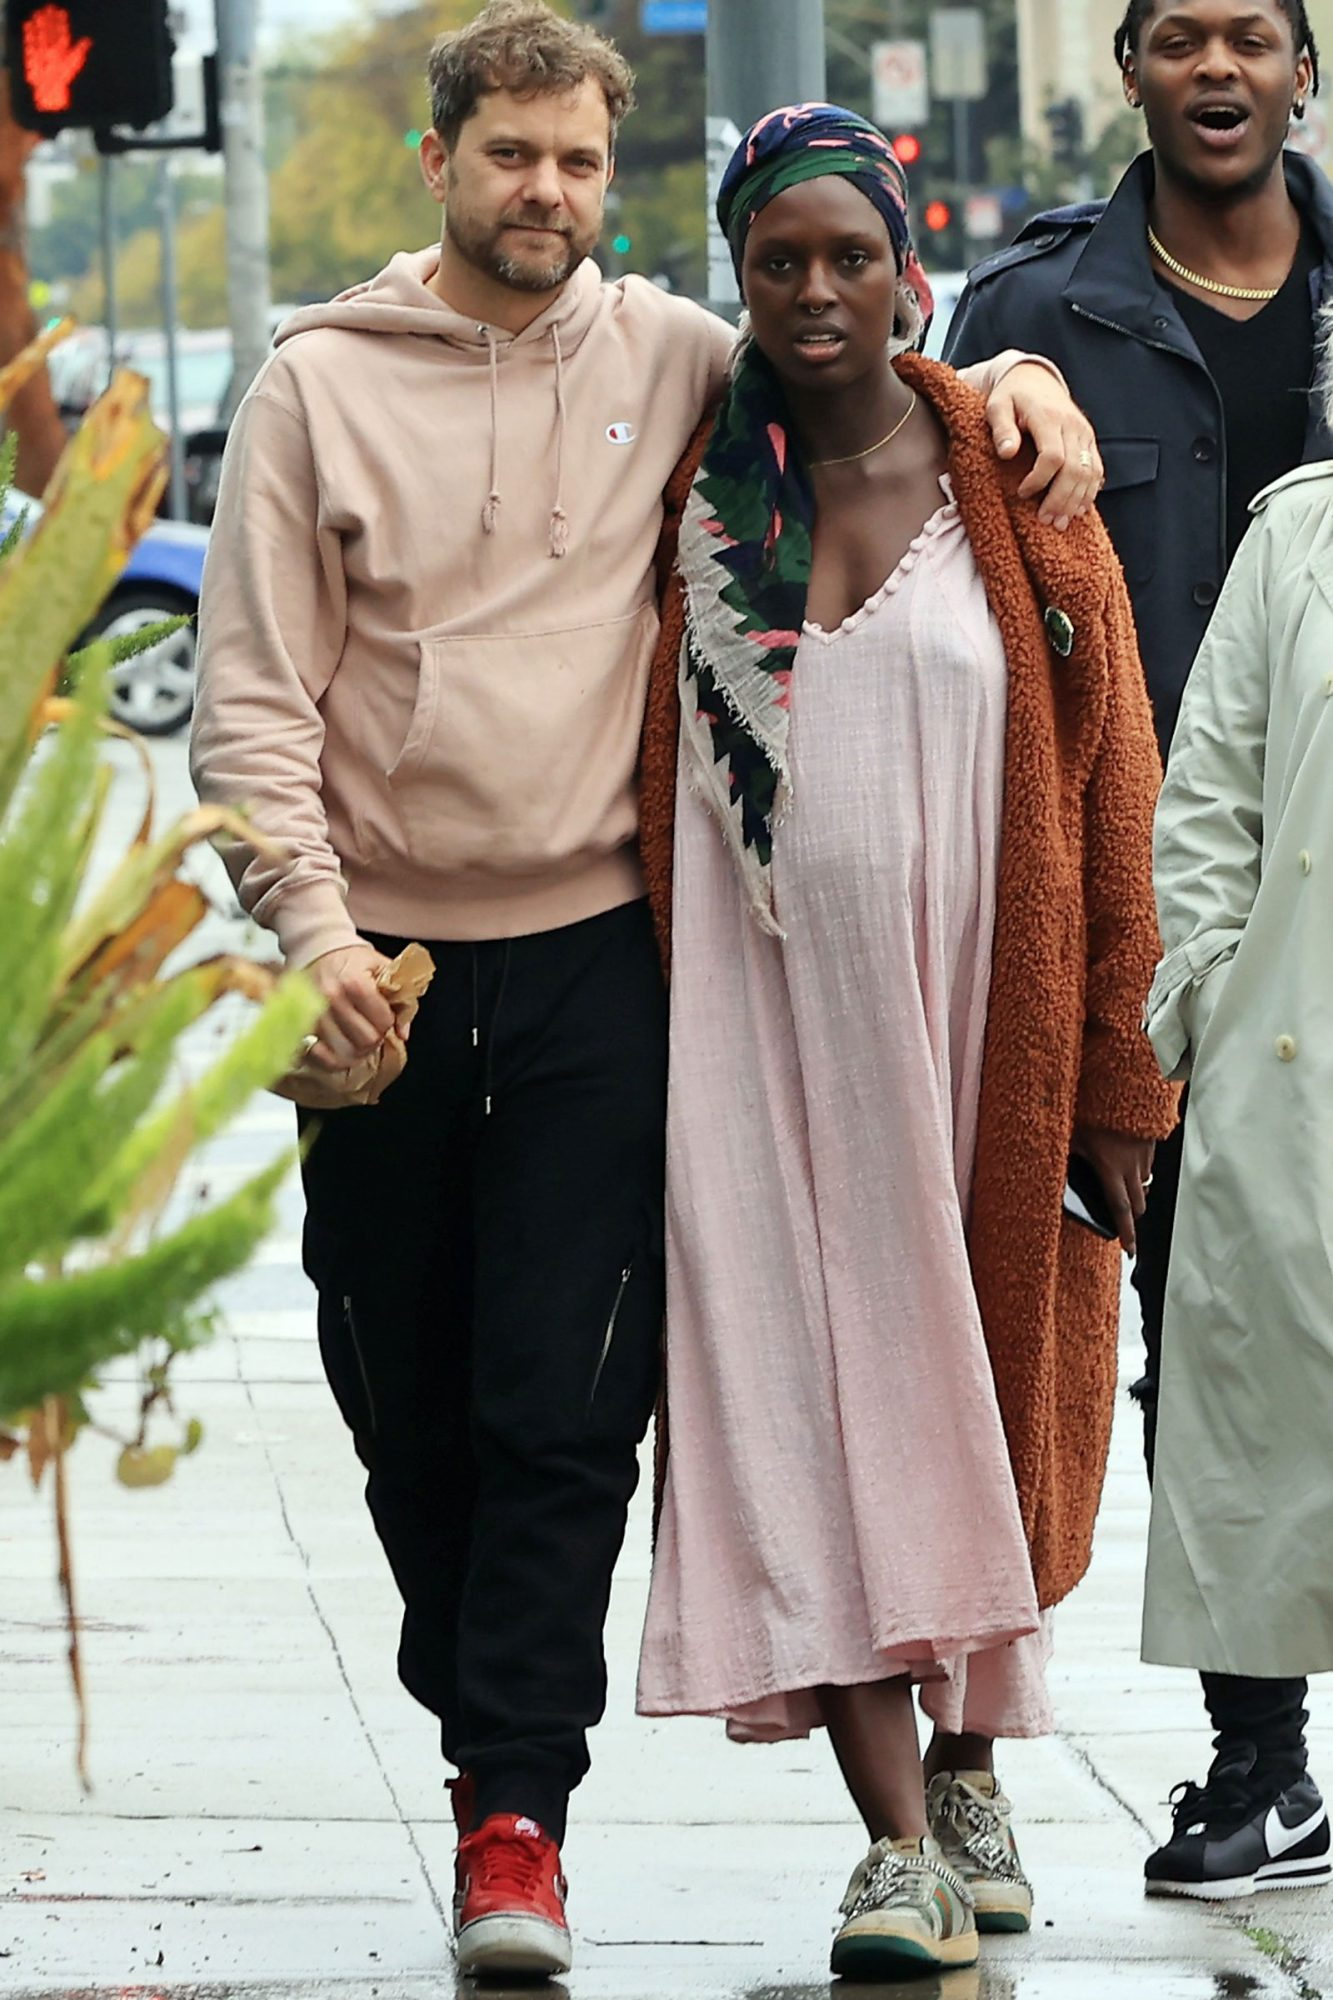 EXCLUSIVE: Joshua Jackson and Pregnant Jodie Turner Smith ignore social distancing